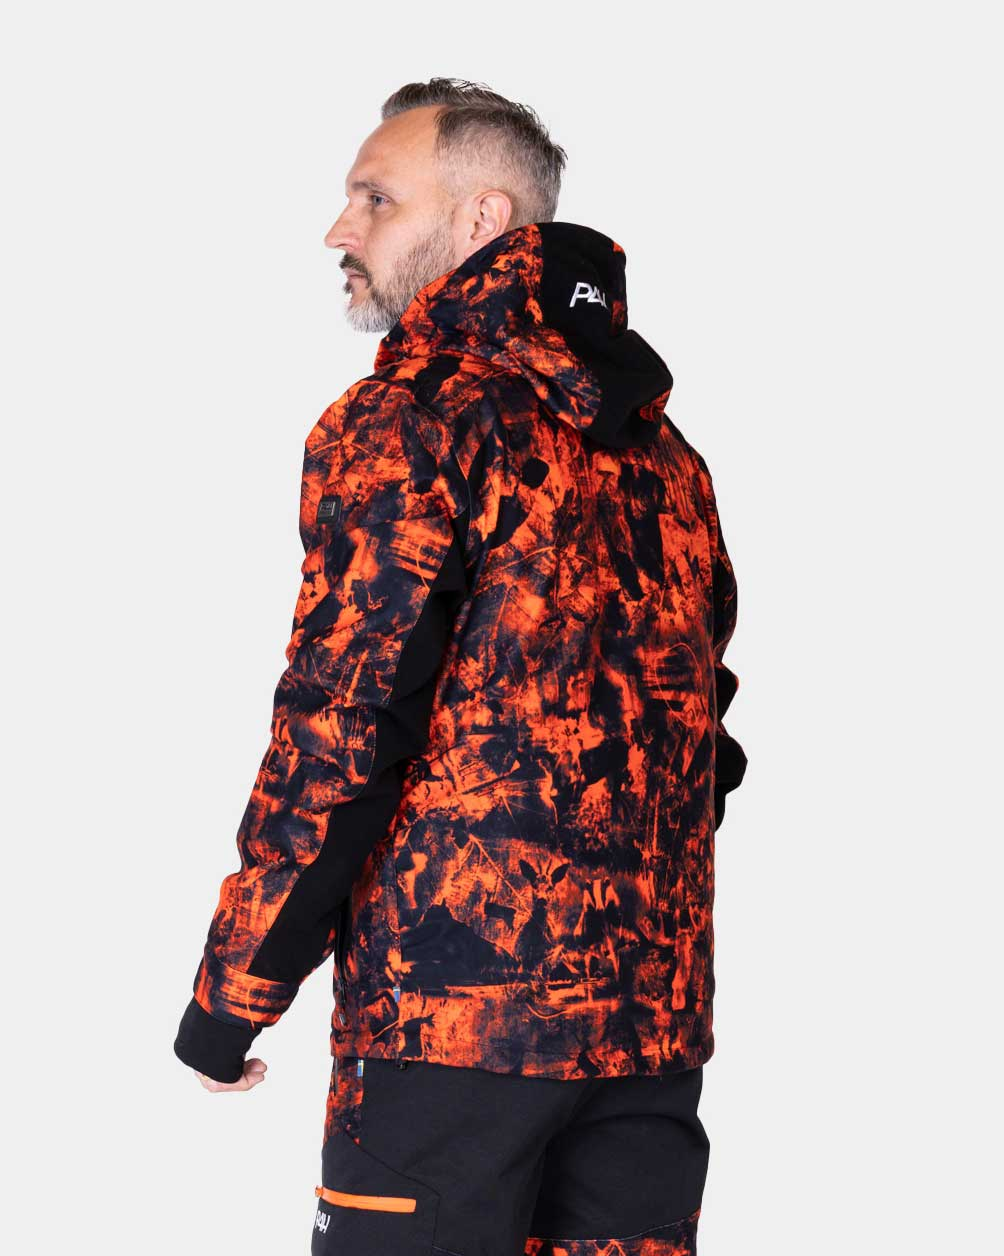 P4H Hunters Elite Jacket, Blaze Comb